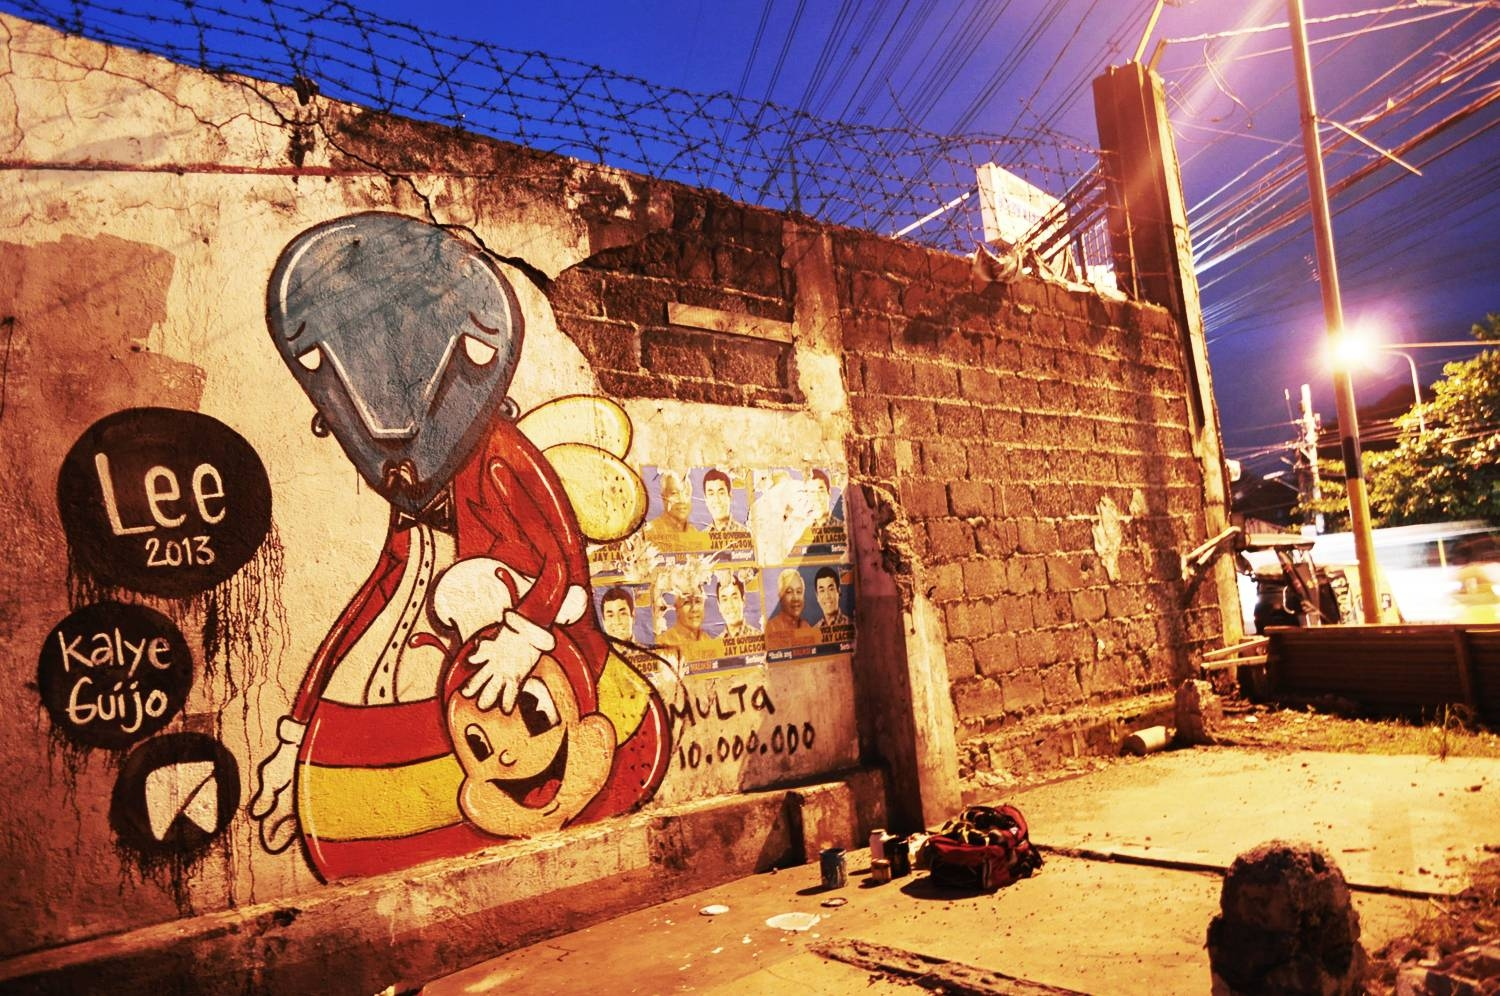 Help Make The Filipino Street Art Project Happen•flpno Intended For Latest Filipino Wall Art (View 16 of 30)